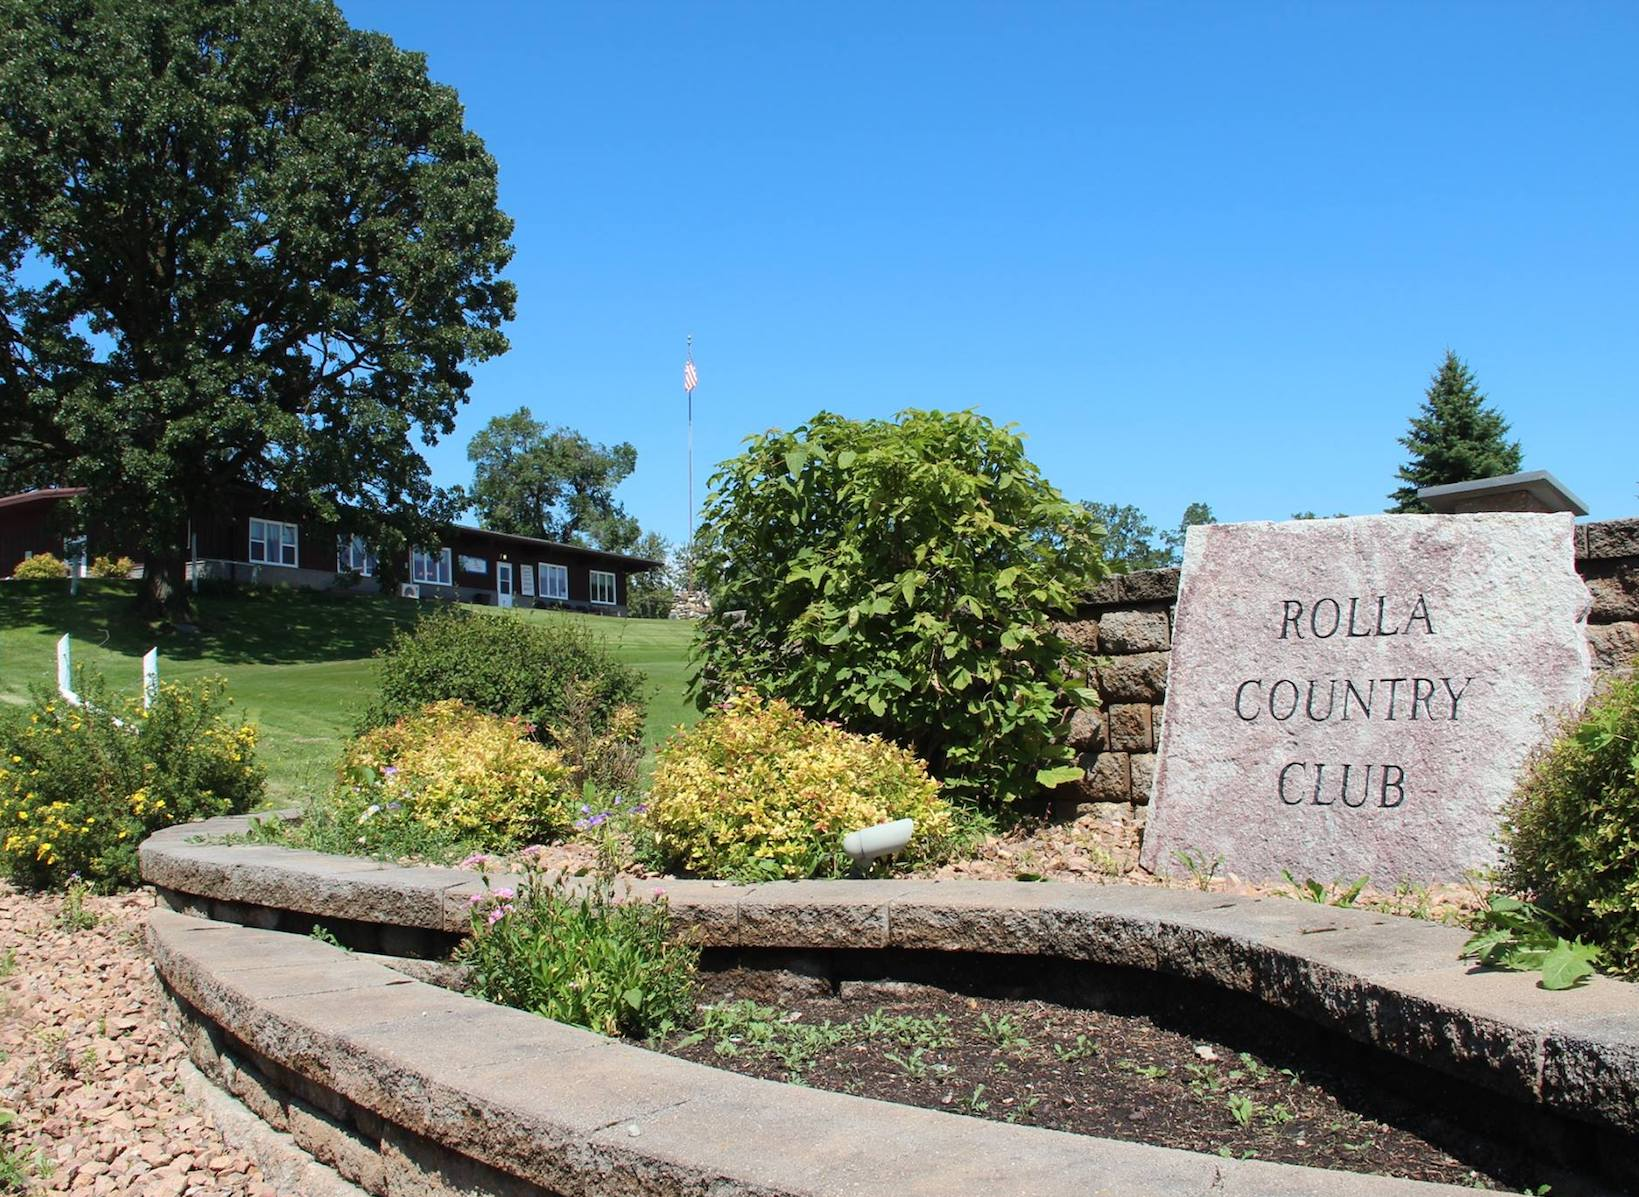 Rolla Country Club